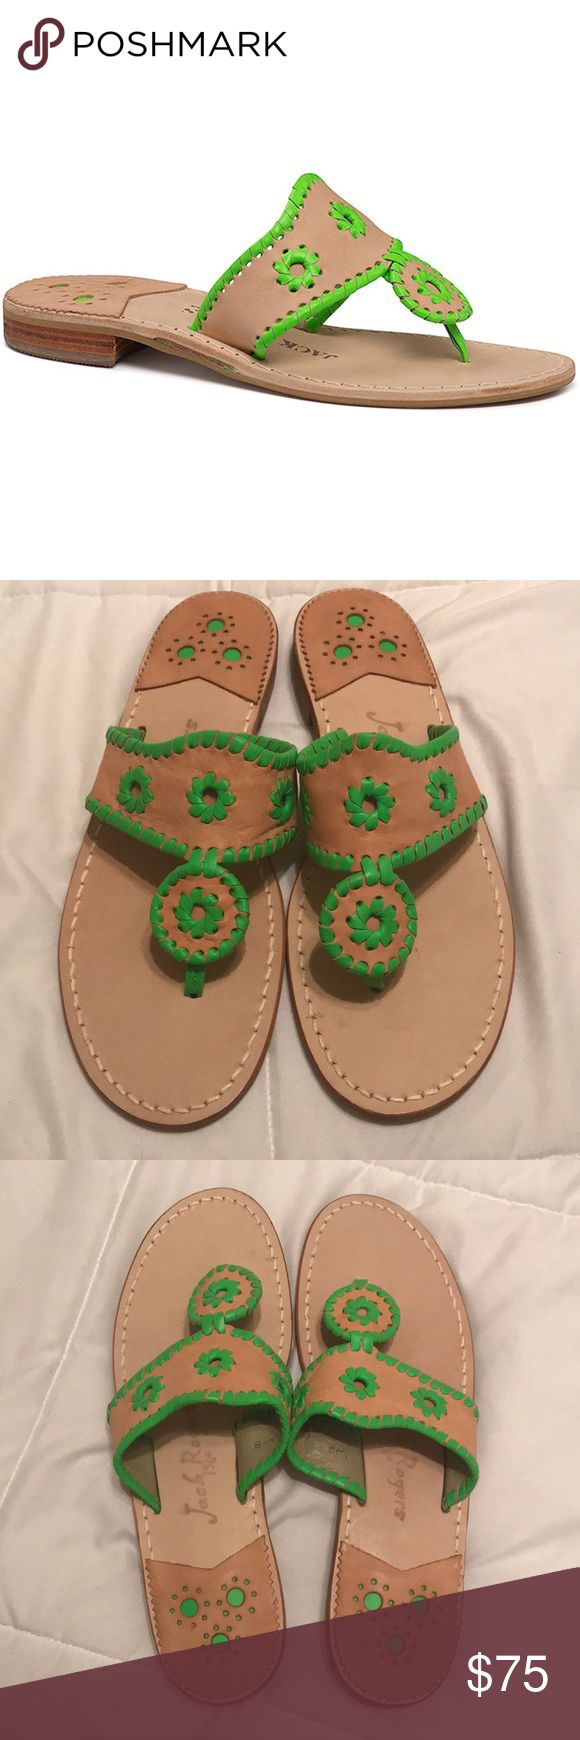 NEVER WORN Jack Rogers Vachetta Neon Sandal NEVER WORN Jack Rogers Vachetta Neon Green Sandals. Size 8. Great Christmas gift! Jack Rogers Shoes Sandals